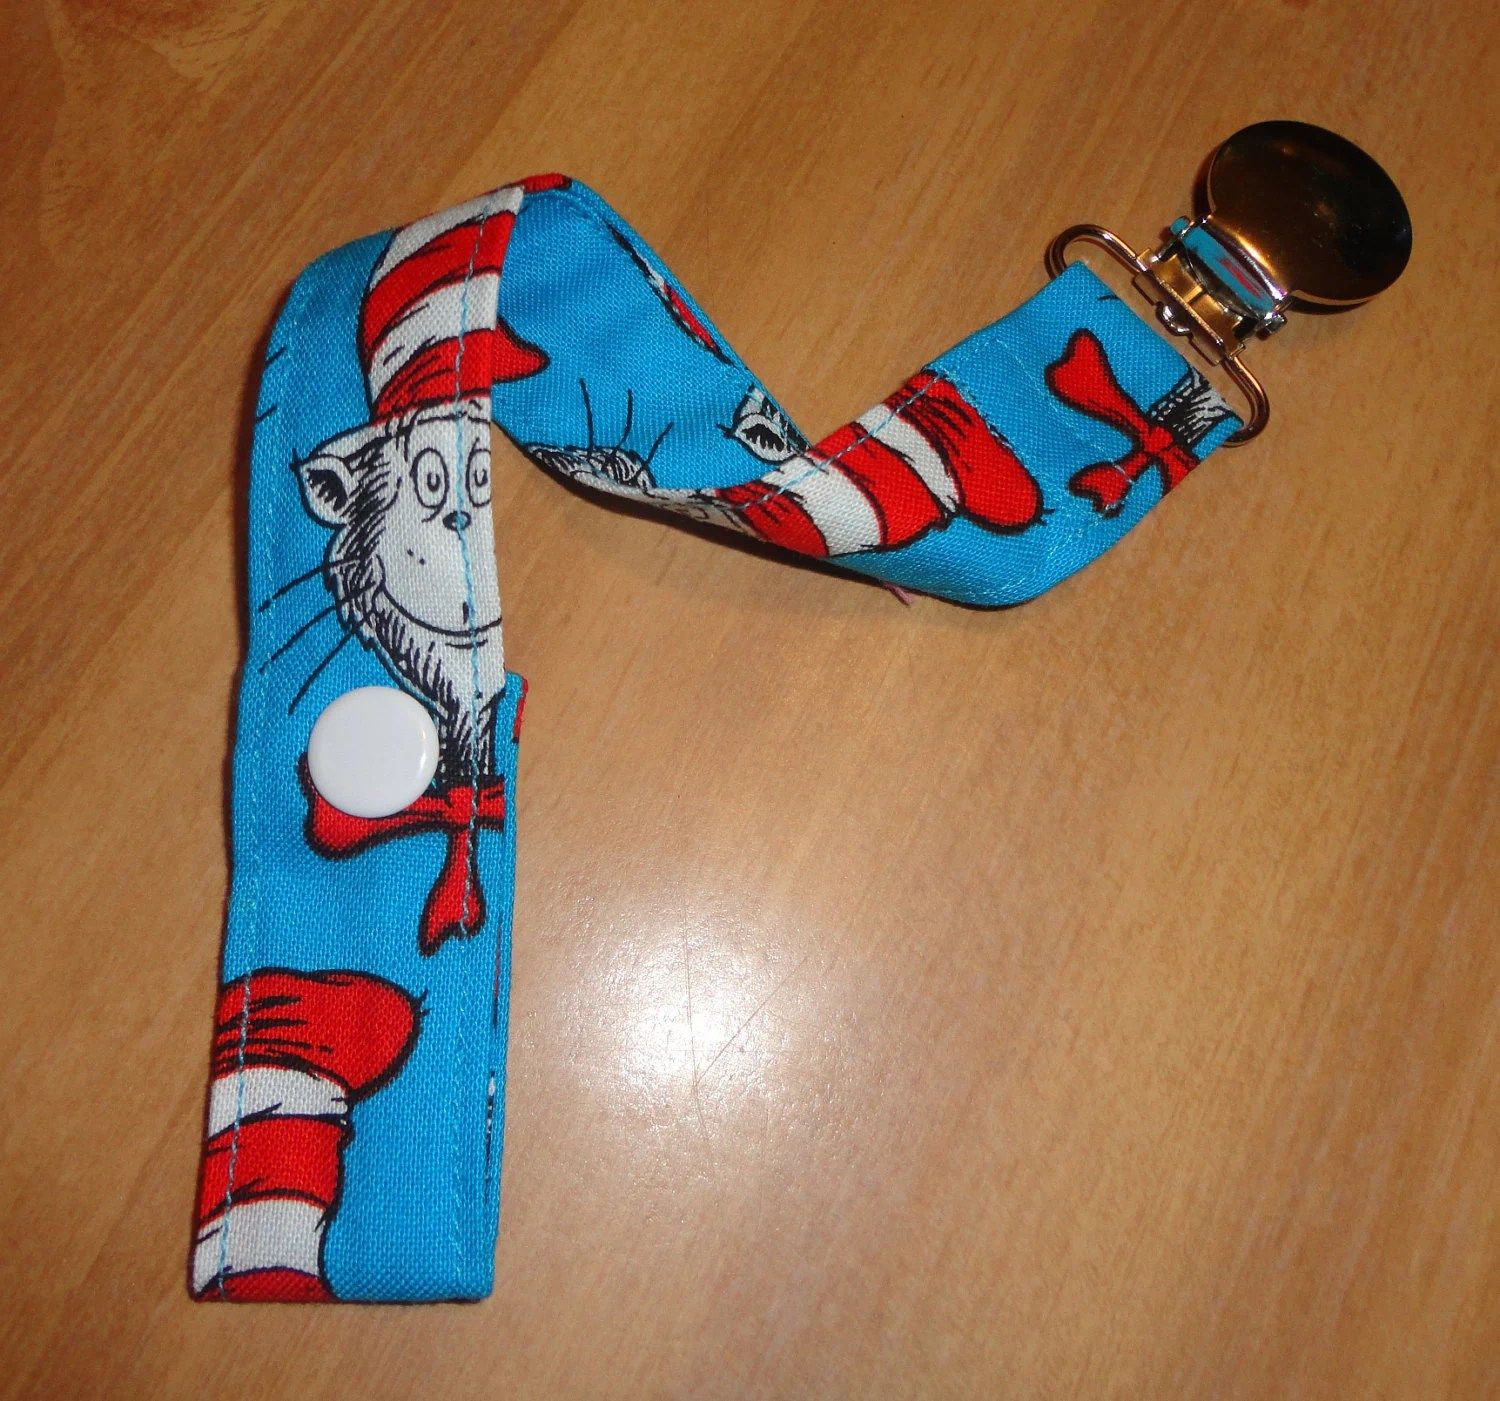 Dr Seuss Blue Print Pacifier / Binky / Passy / Toy Holder - TotallyKidding